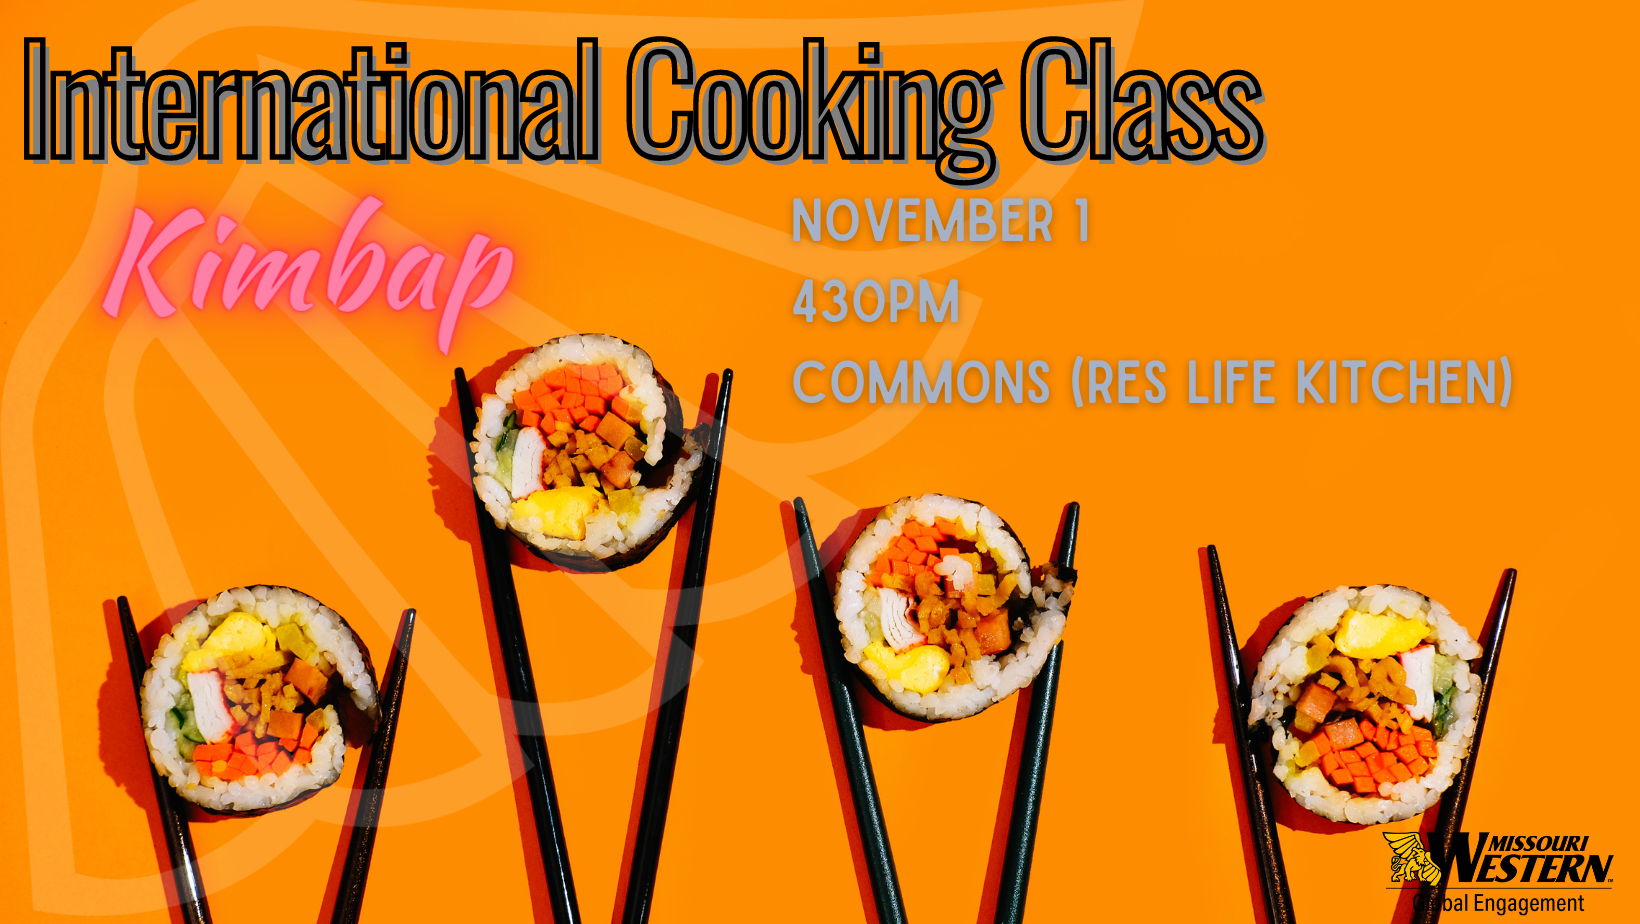 International Cooking Class flyer with pictures of chop sticks holding sushi